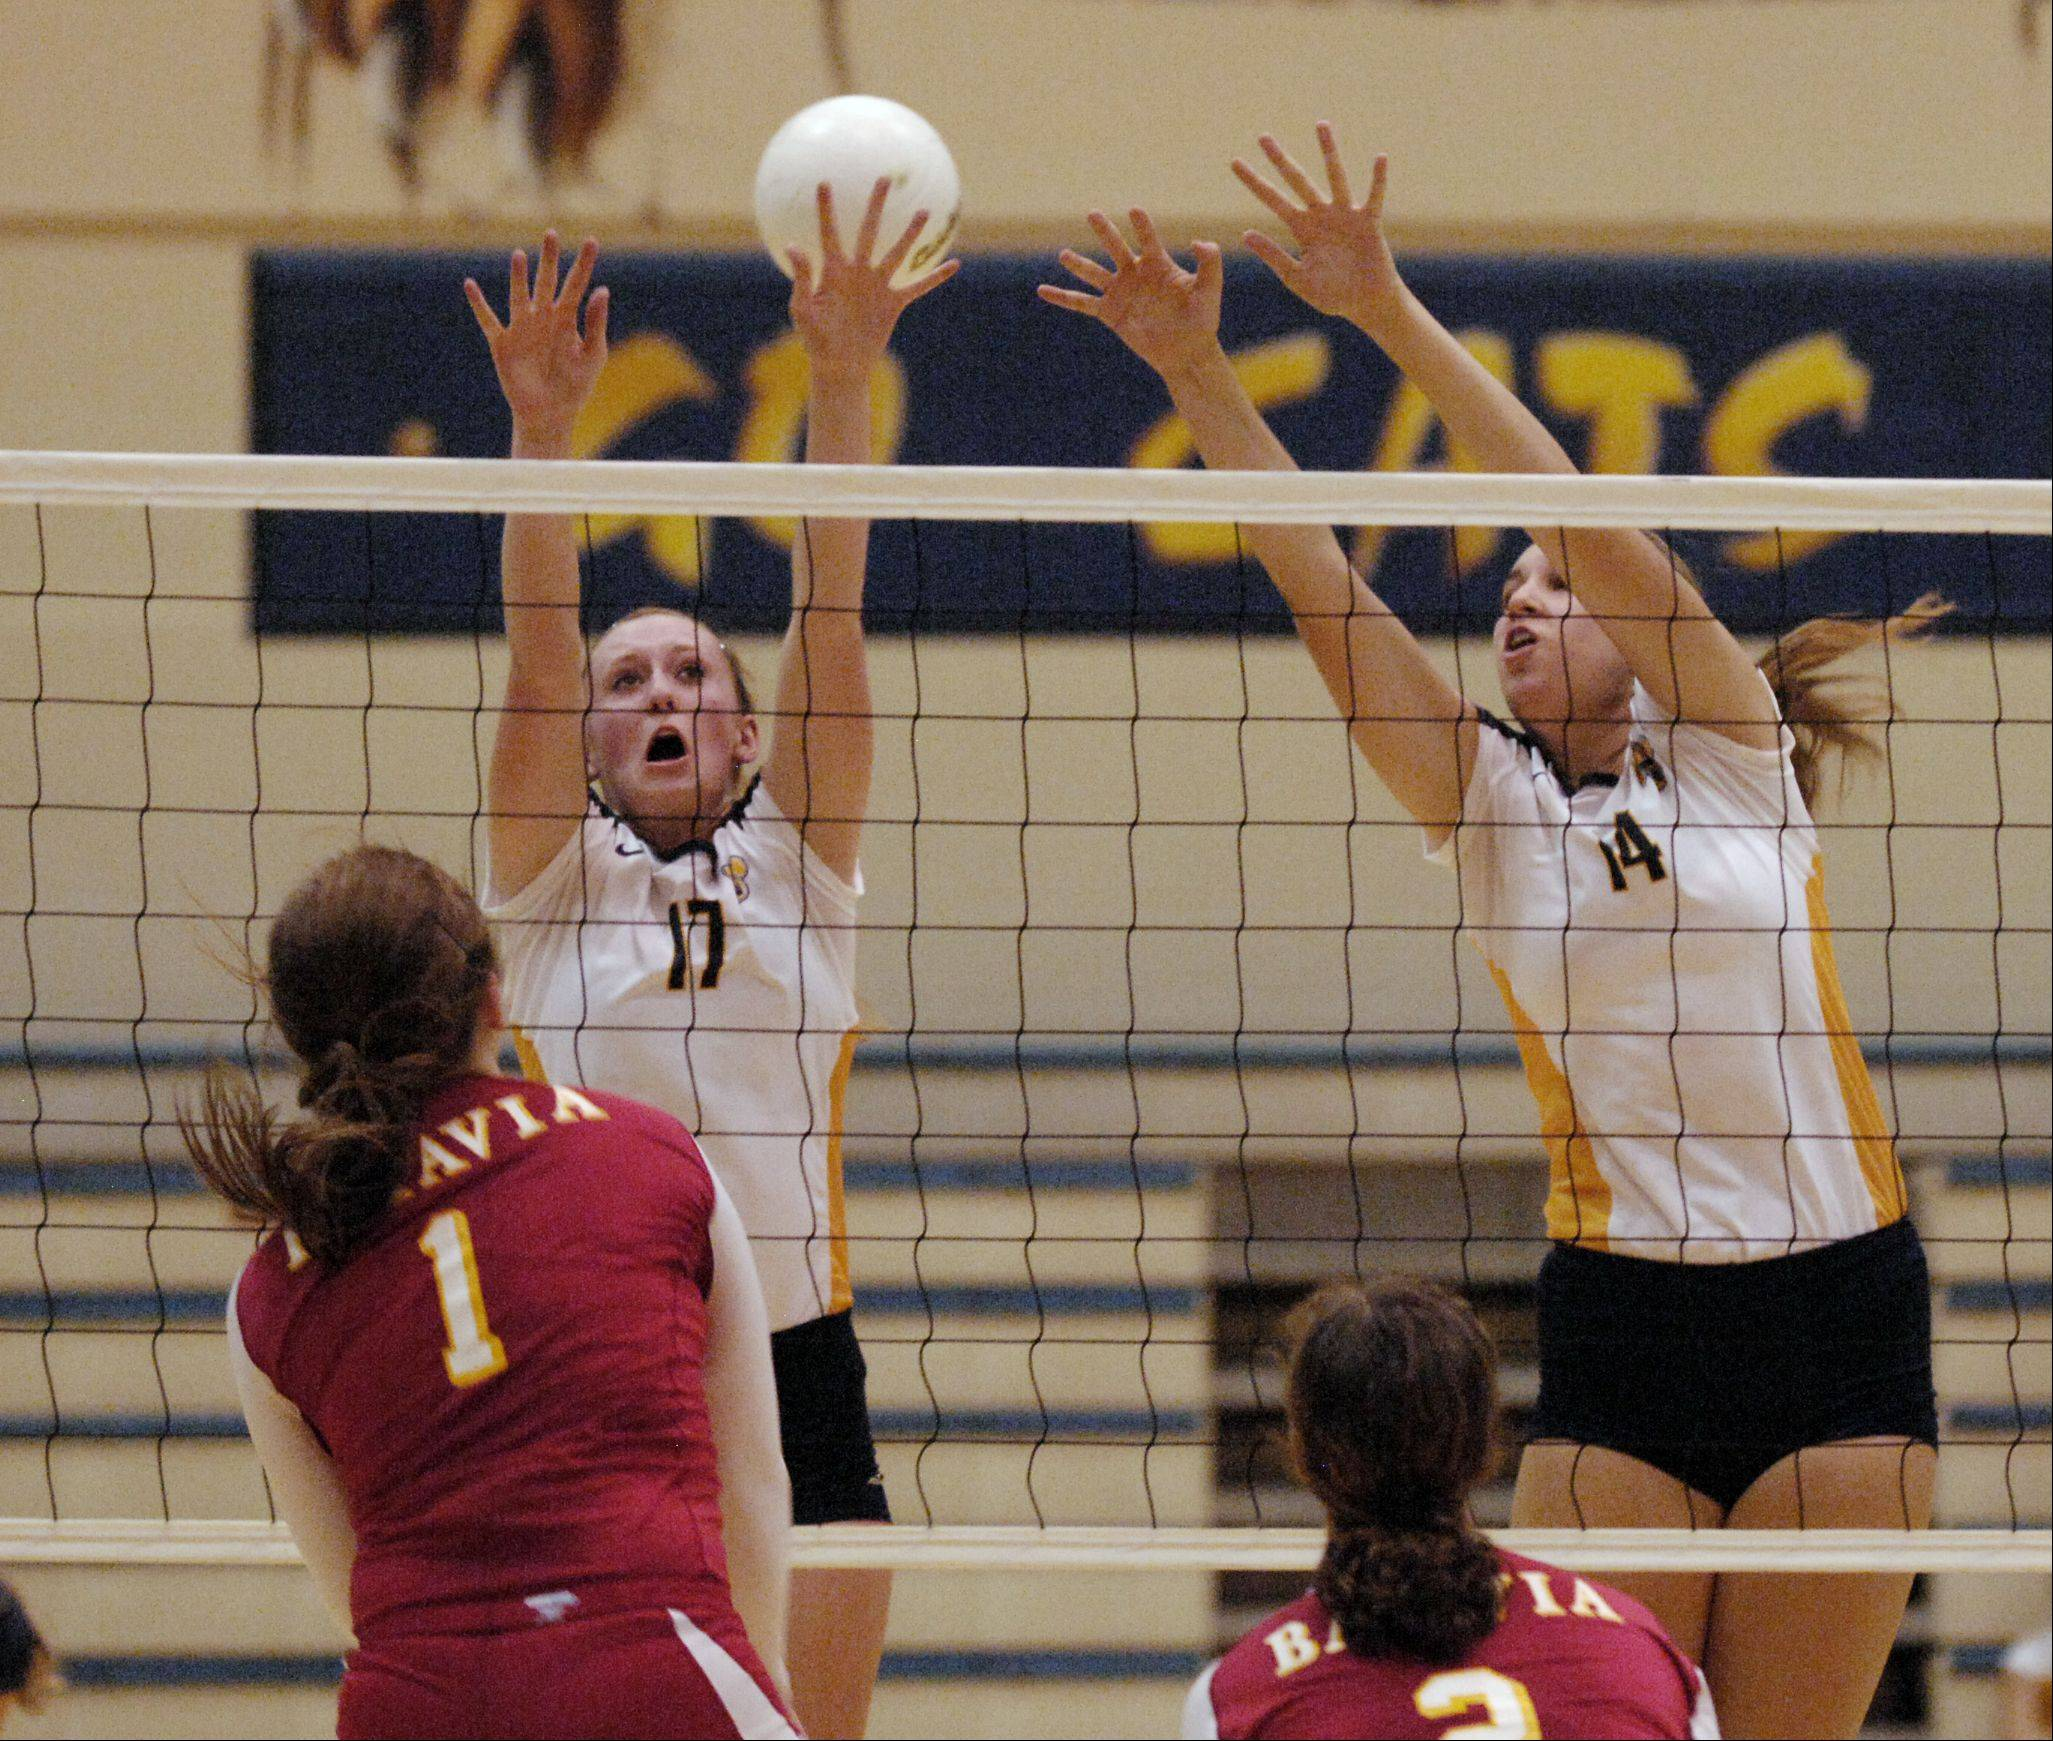 Shea Stanley of Batavia fires the ball past Allie Clarke and Brenna Dunckel of Neuqua Valley during varsity volleyball in Naperville. Batavia won 2-0.